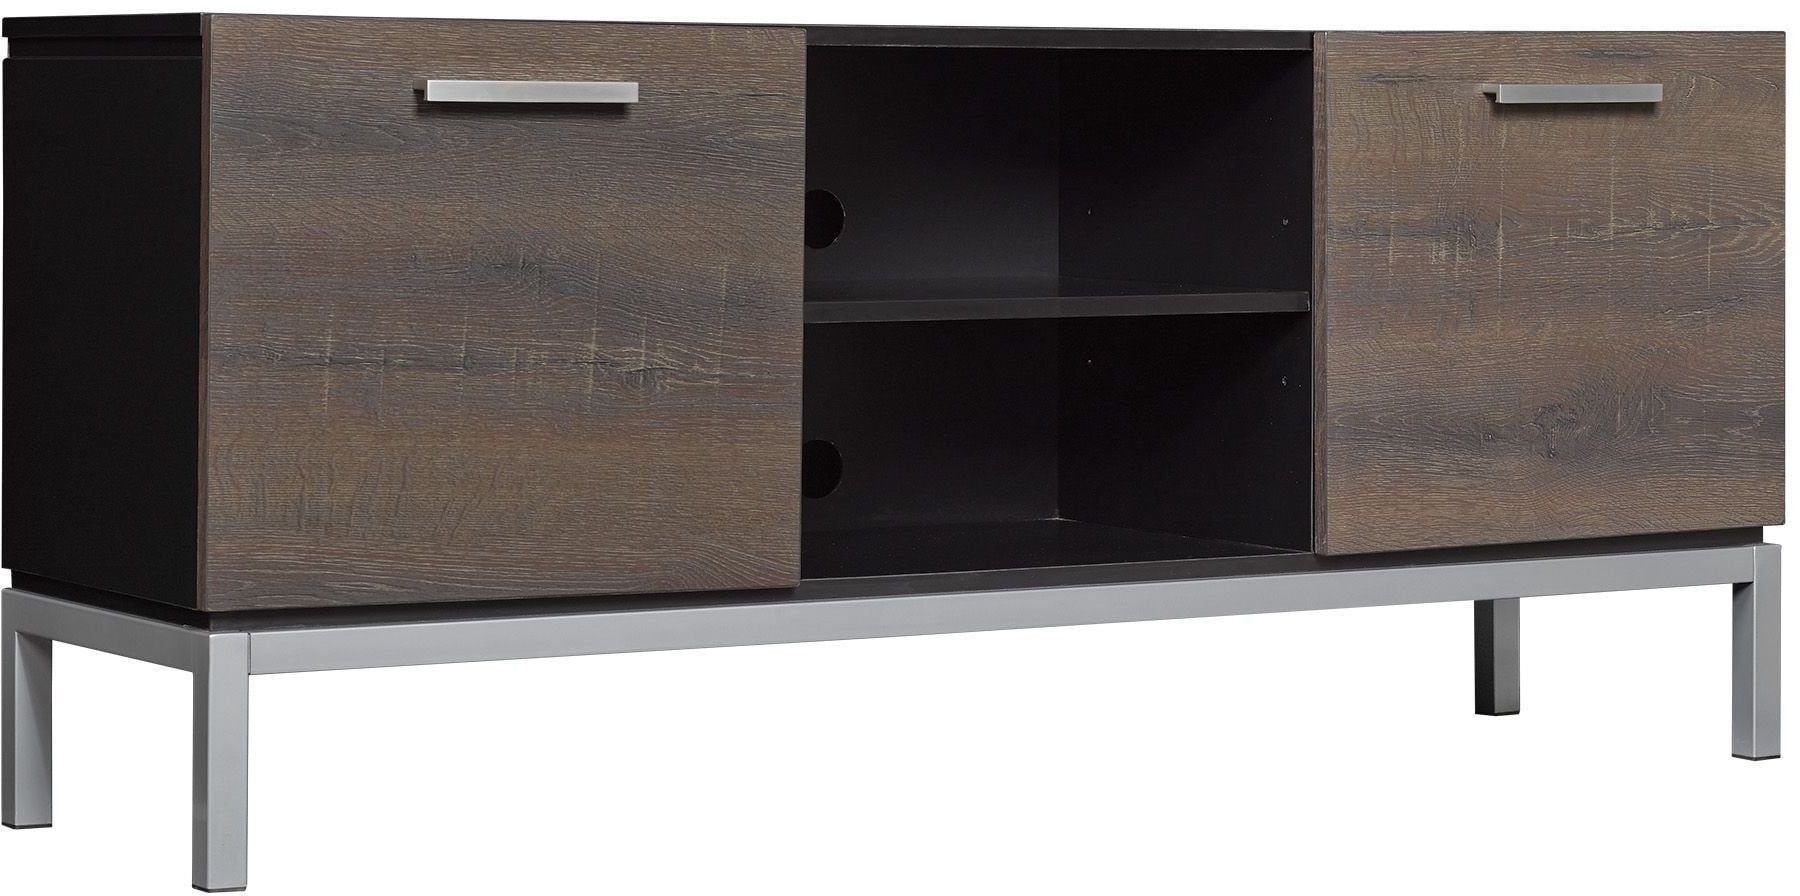 Bell 39 o black cutler bay tv stand from twin star international coleman furniture Badcock home furniture more cutler bay fl